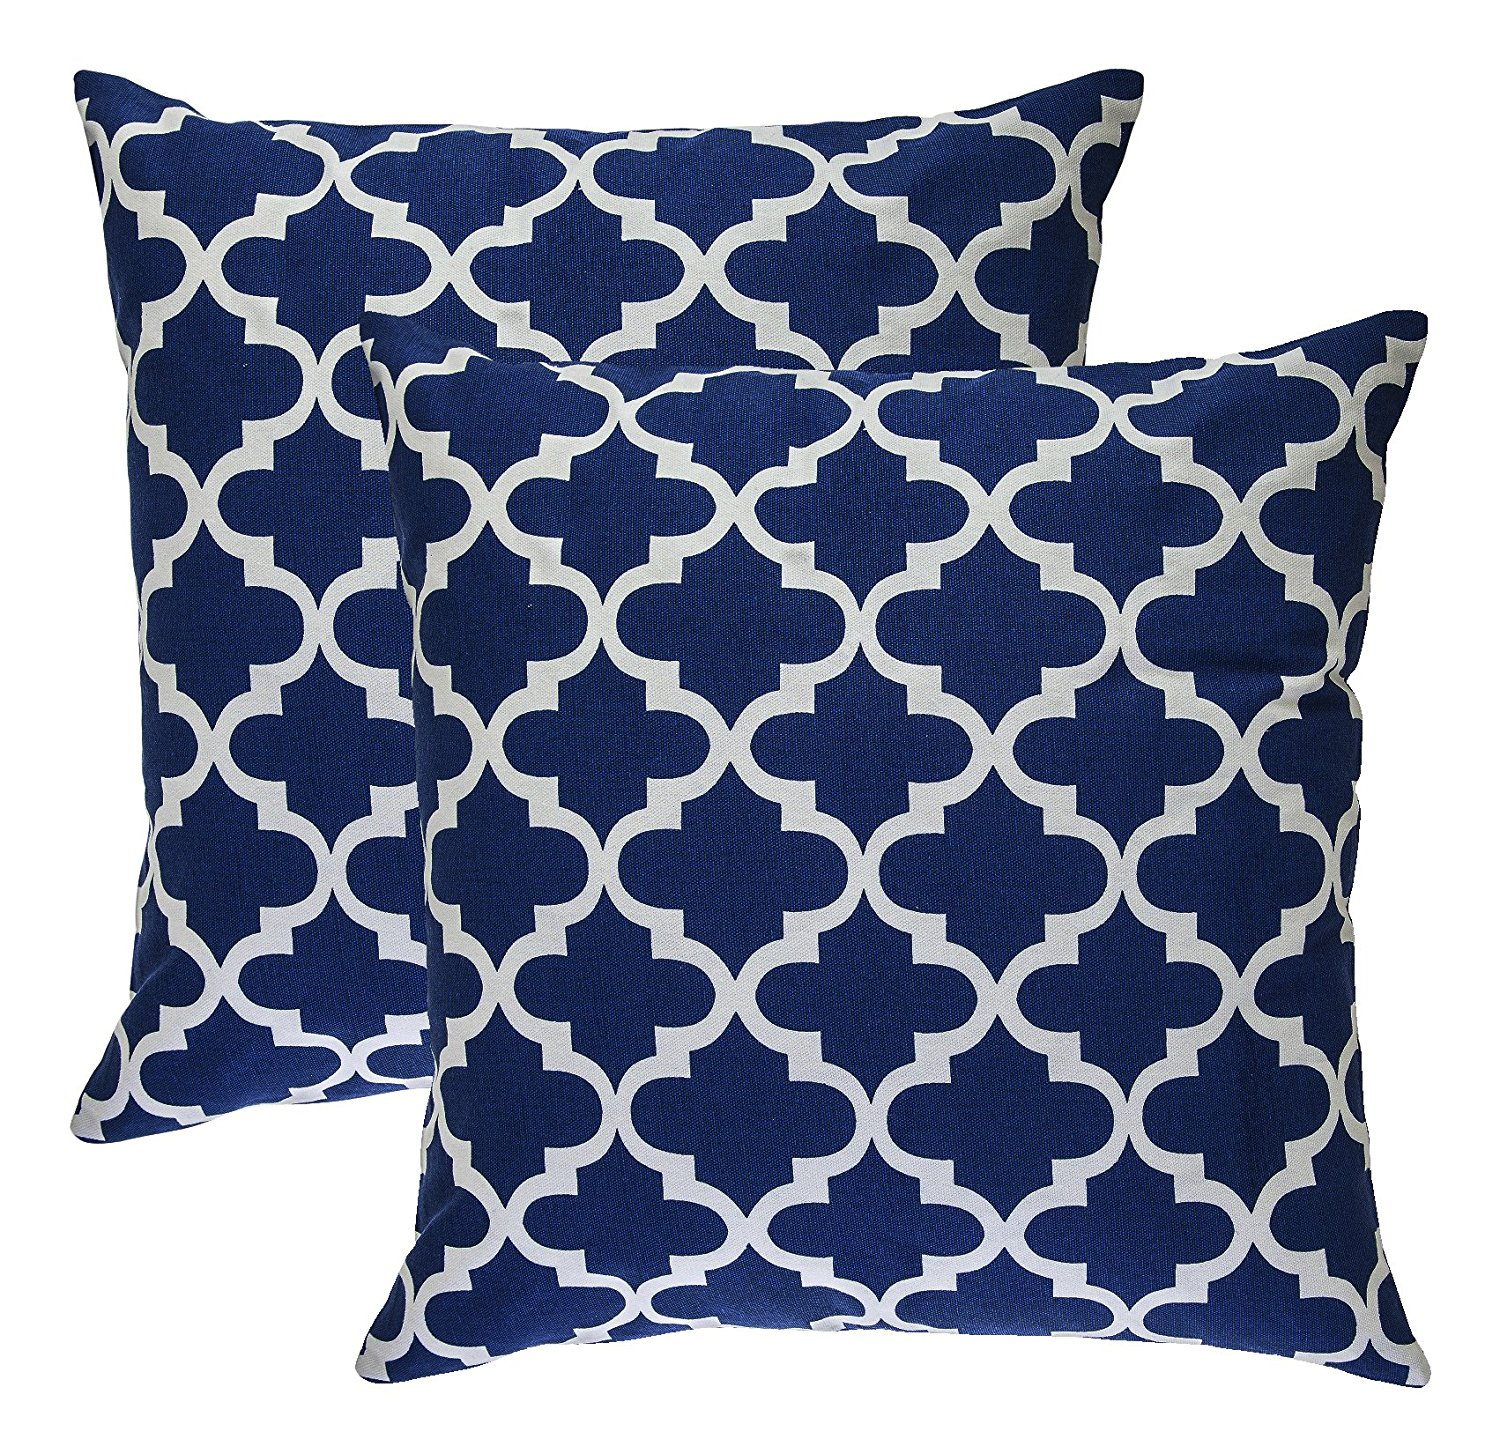 TreeWool, Cotton Canvas Trellis Accent Decorative Throw Pillowcases (2 Cushion Covers; 18 x 18 Inches; Navy Blue & White)